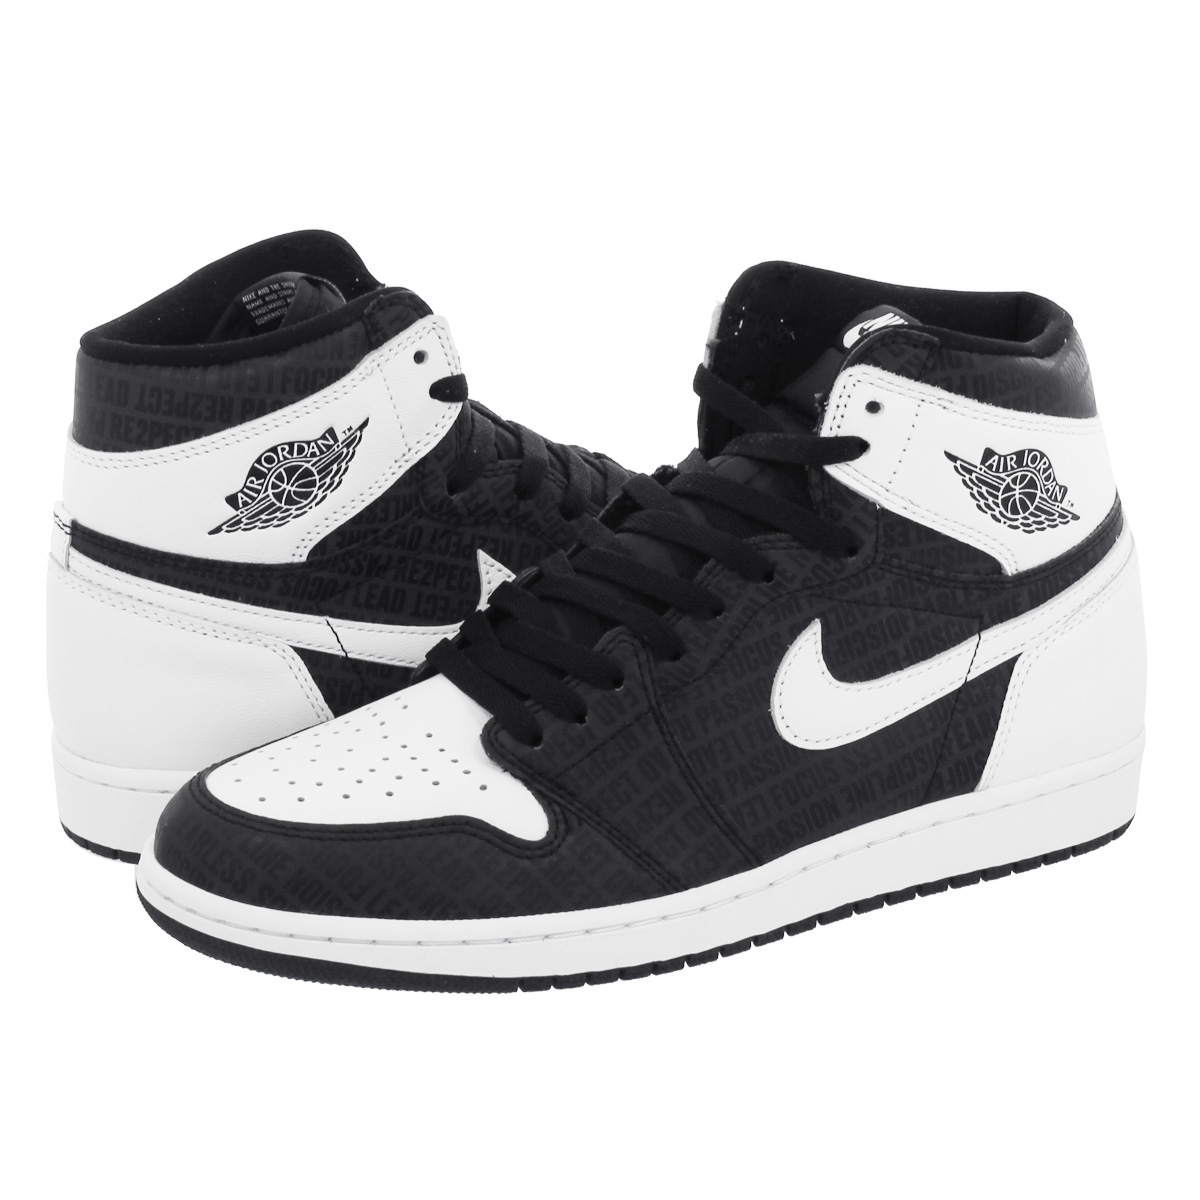 NIKE AIR JORDAN 1 RETRO HIGH OG Nike Air Jordan 1 nostalgic high OG  BLACK/WHITE 555,088-008